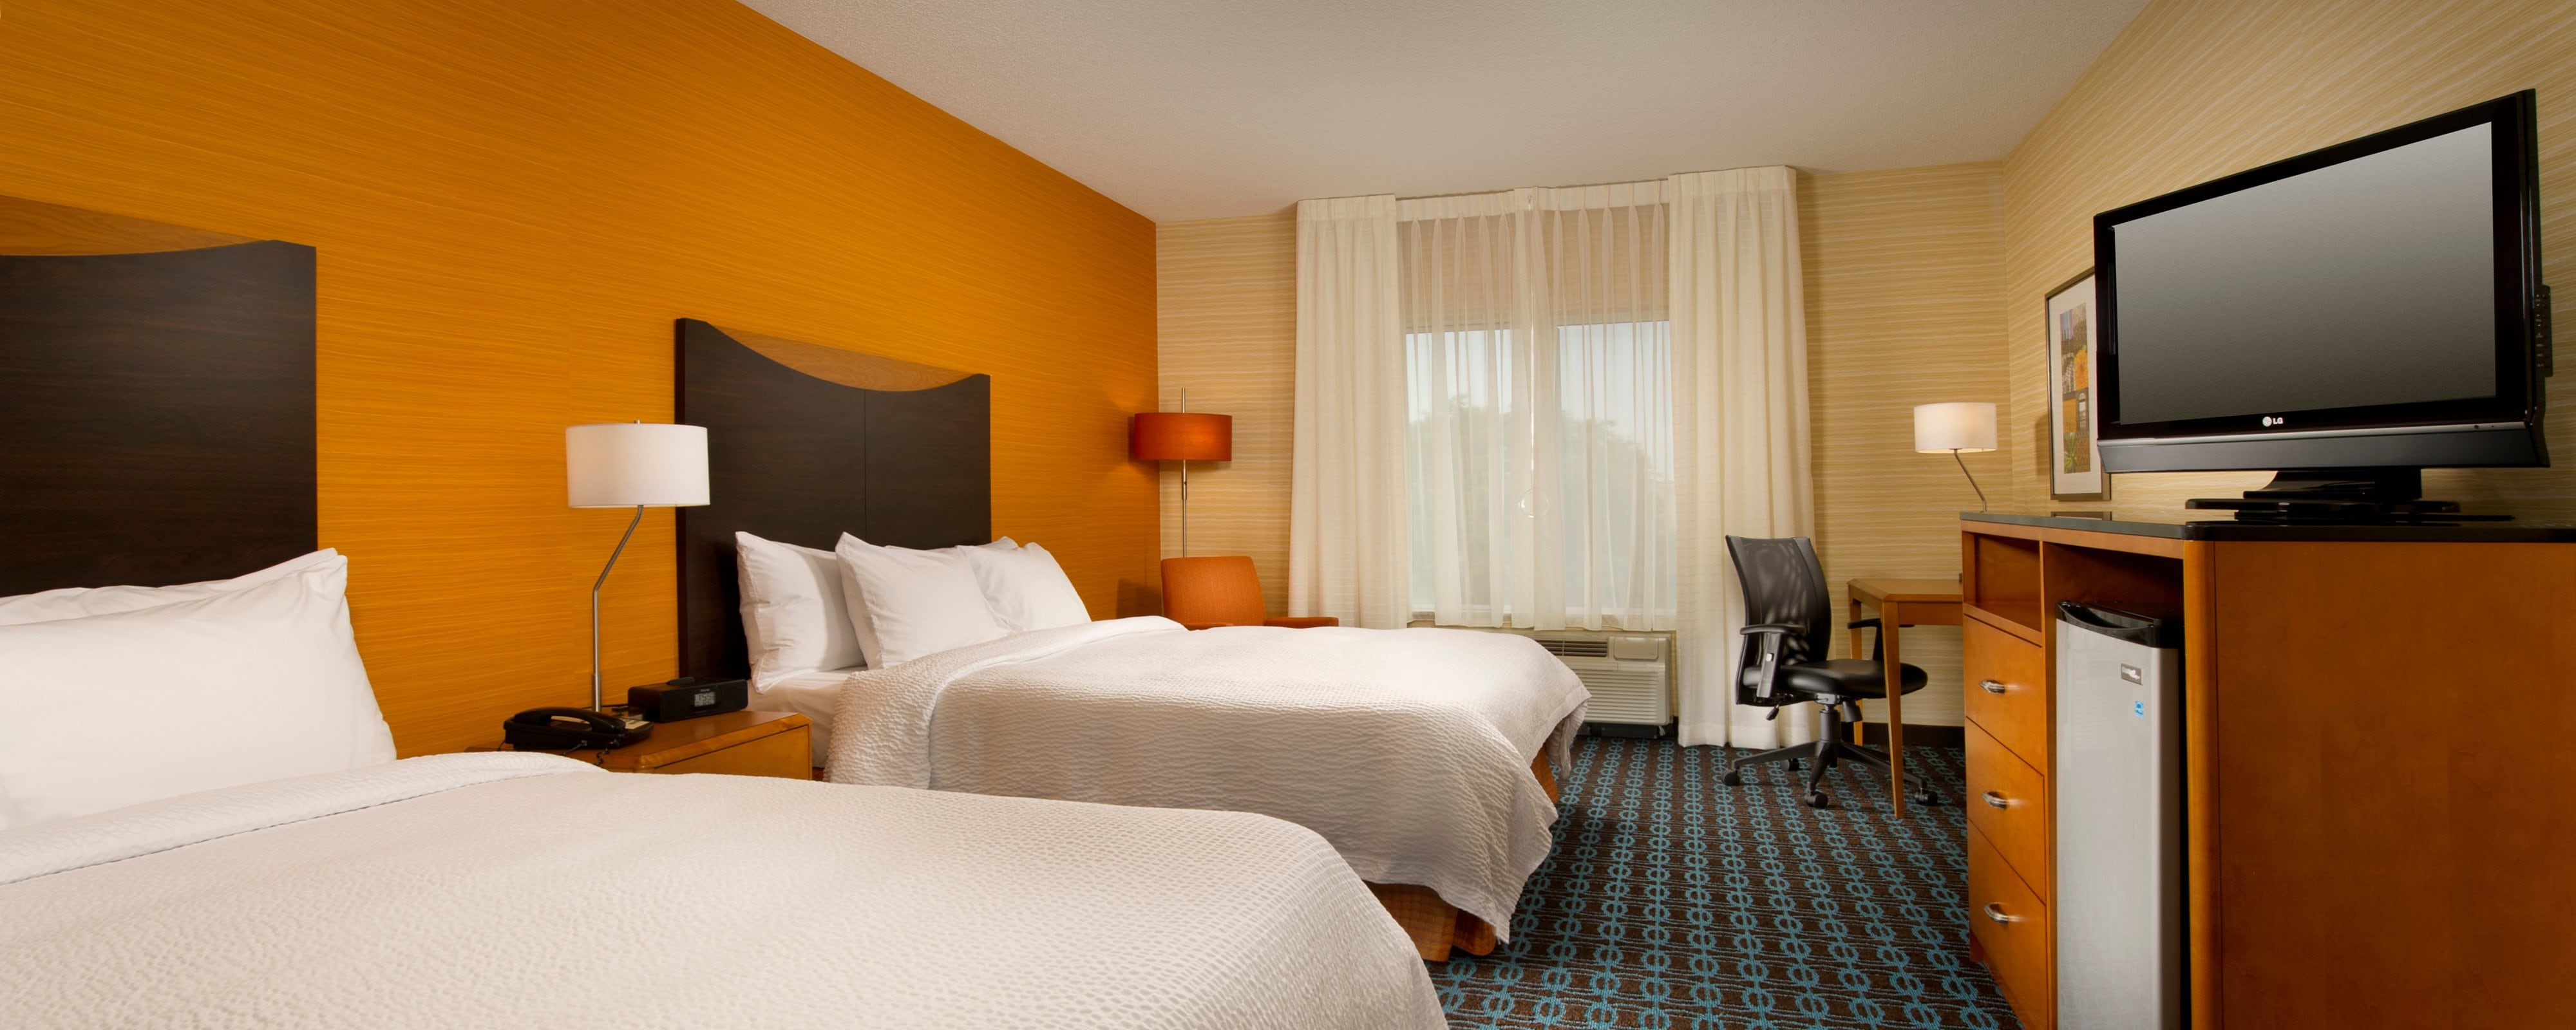 Germantown Maryland Hotel Rooms